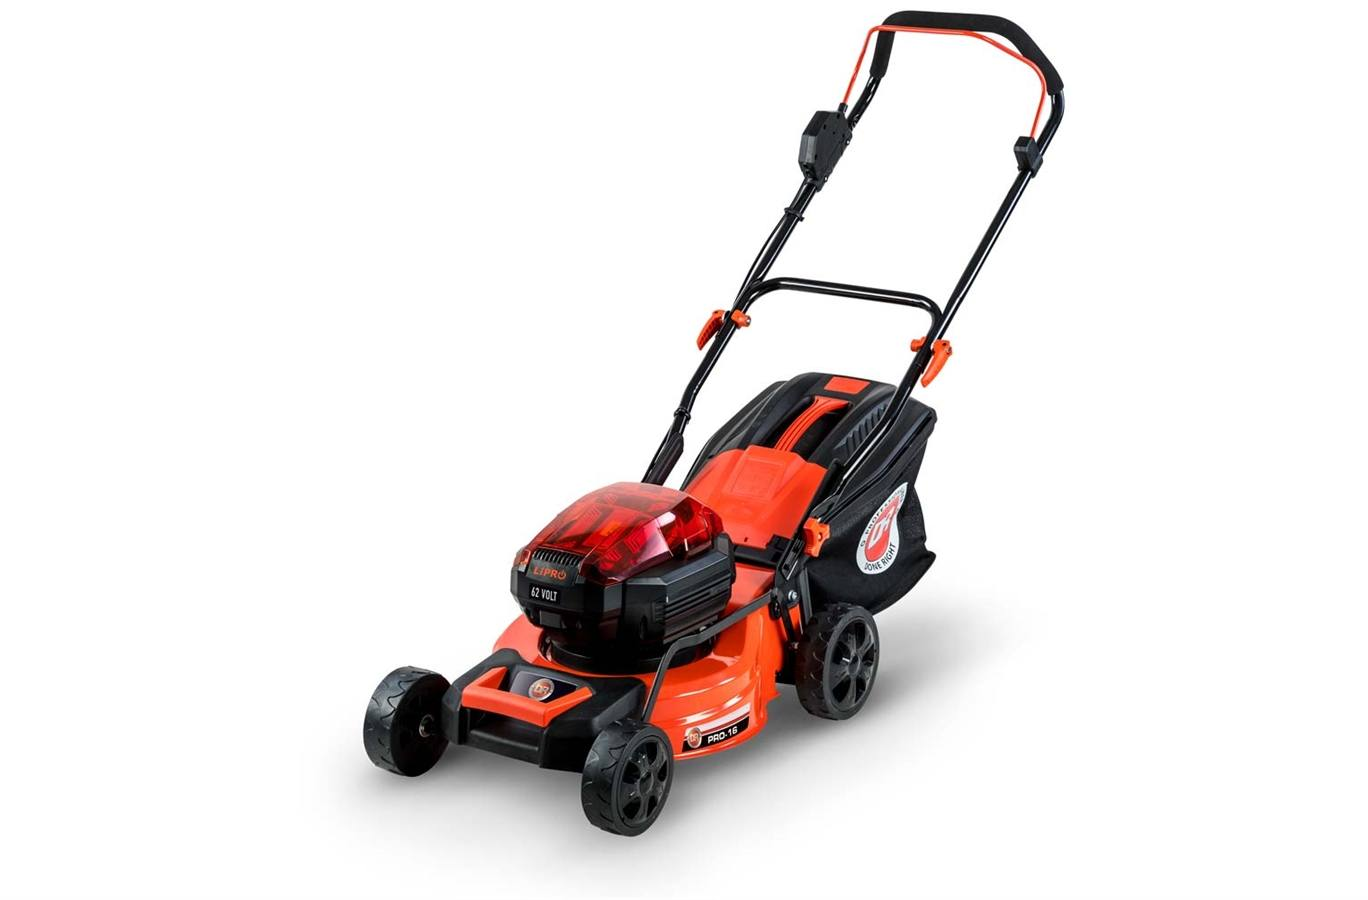 CE73016XEN DR 62V Battery-Powered Lawn Mower w/1 Battery